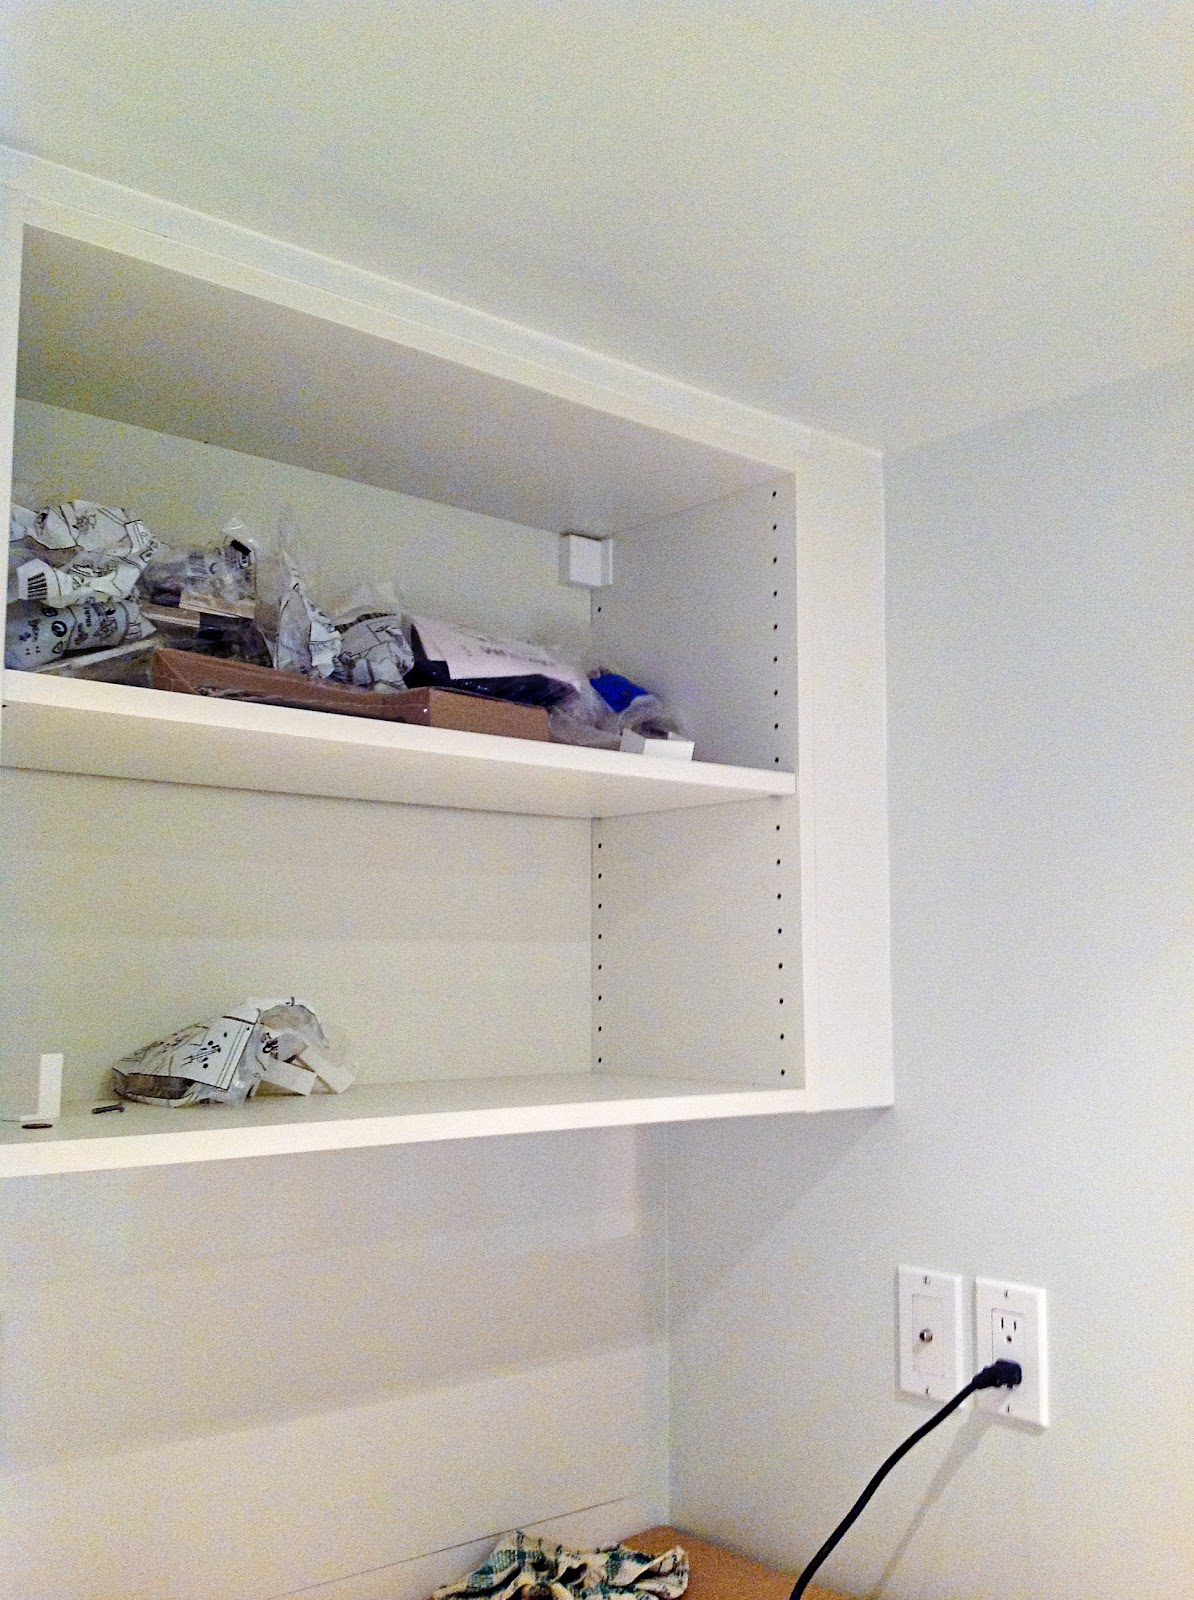 IKEA Pax filler panel, IKEA filler panel, IKEA SEKTION filler panel, make ikea PAX look built in